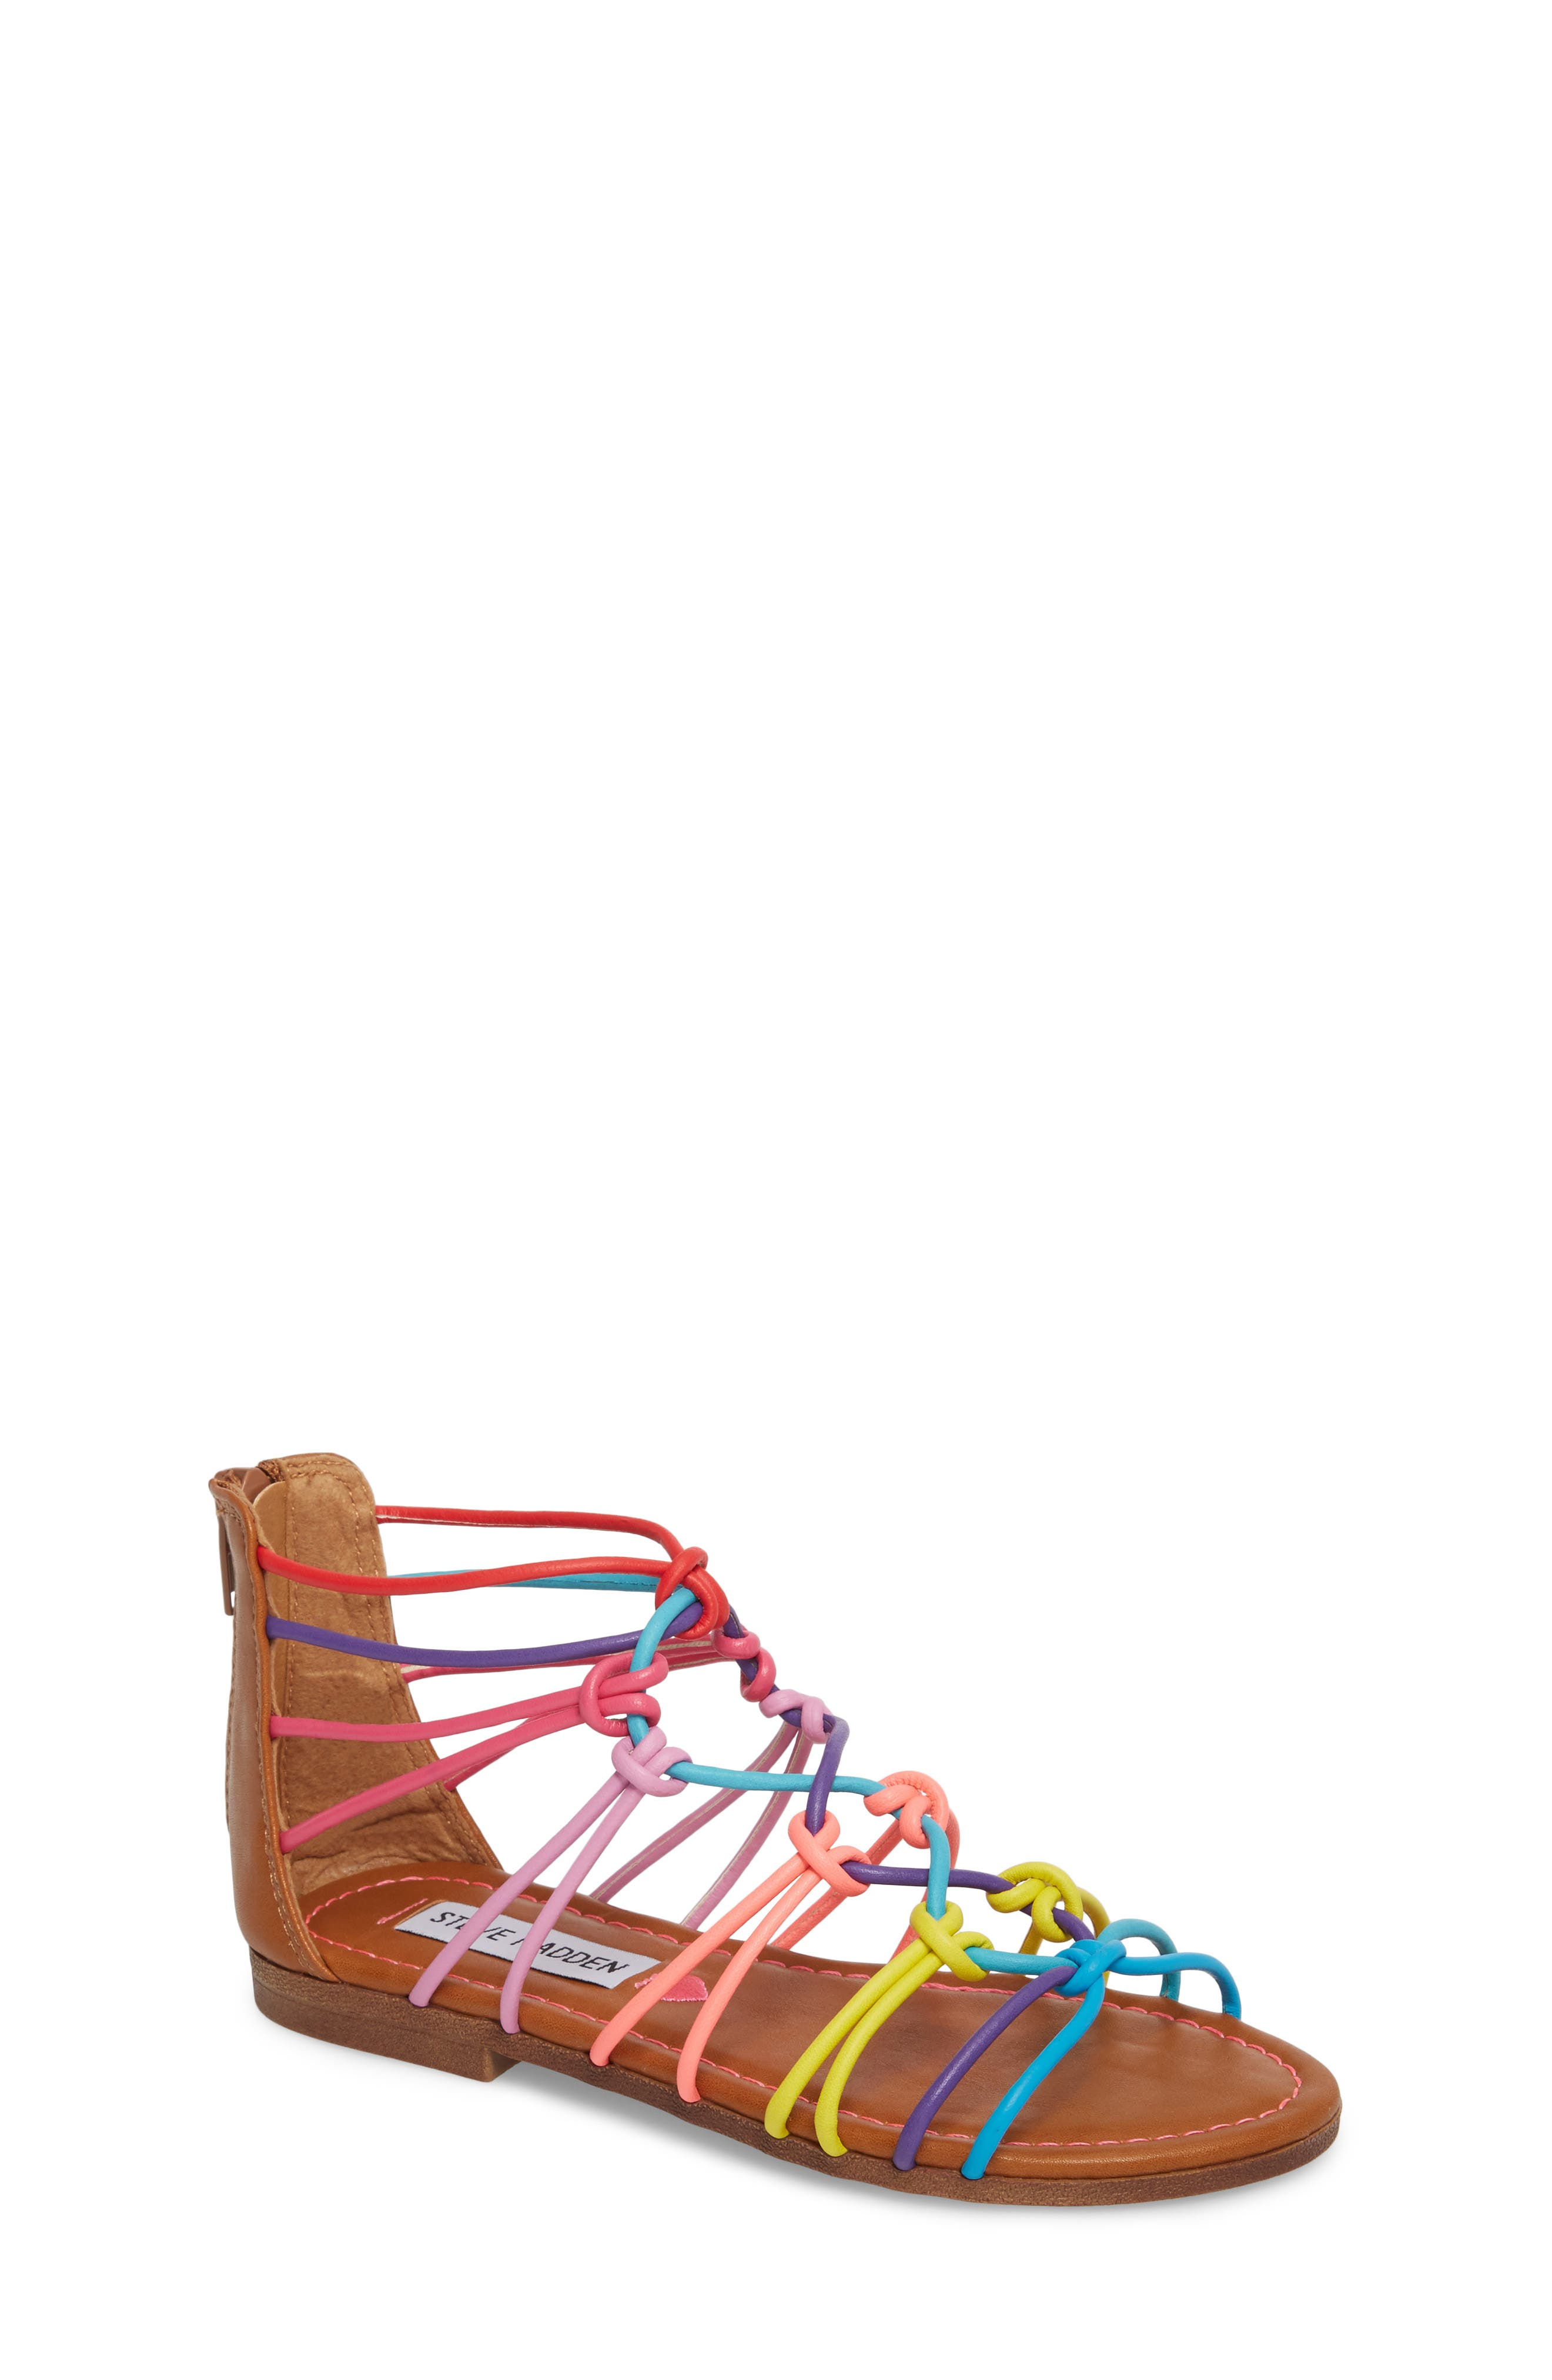 Mystery Strappy Sandal,                             Main thumbnail 1, color,                             650